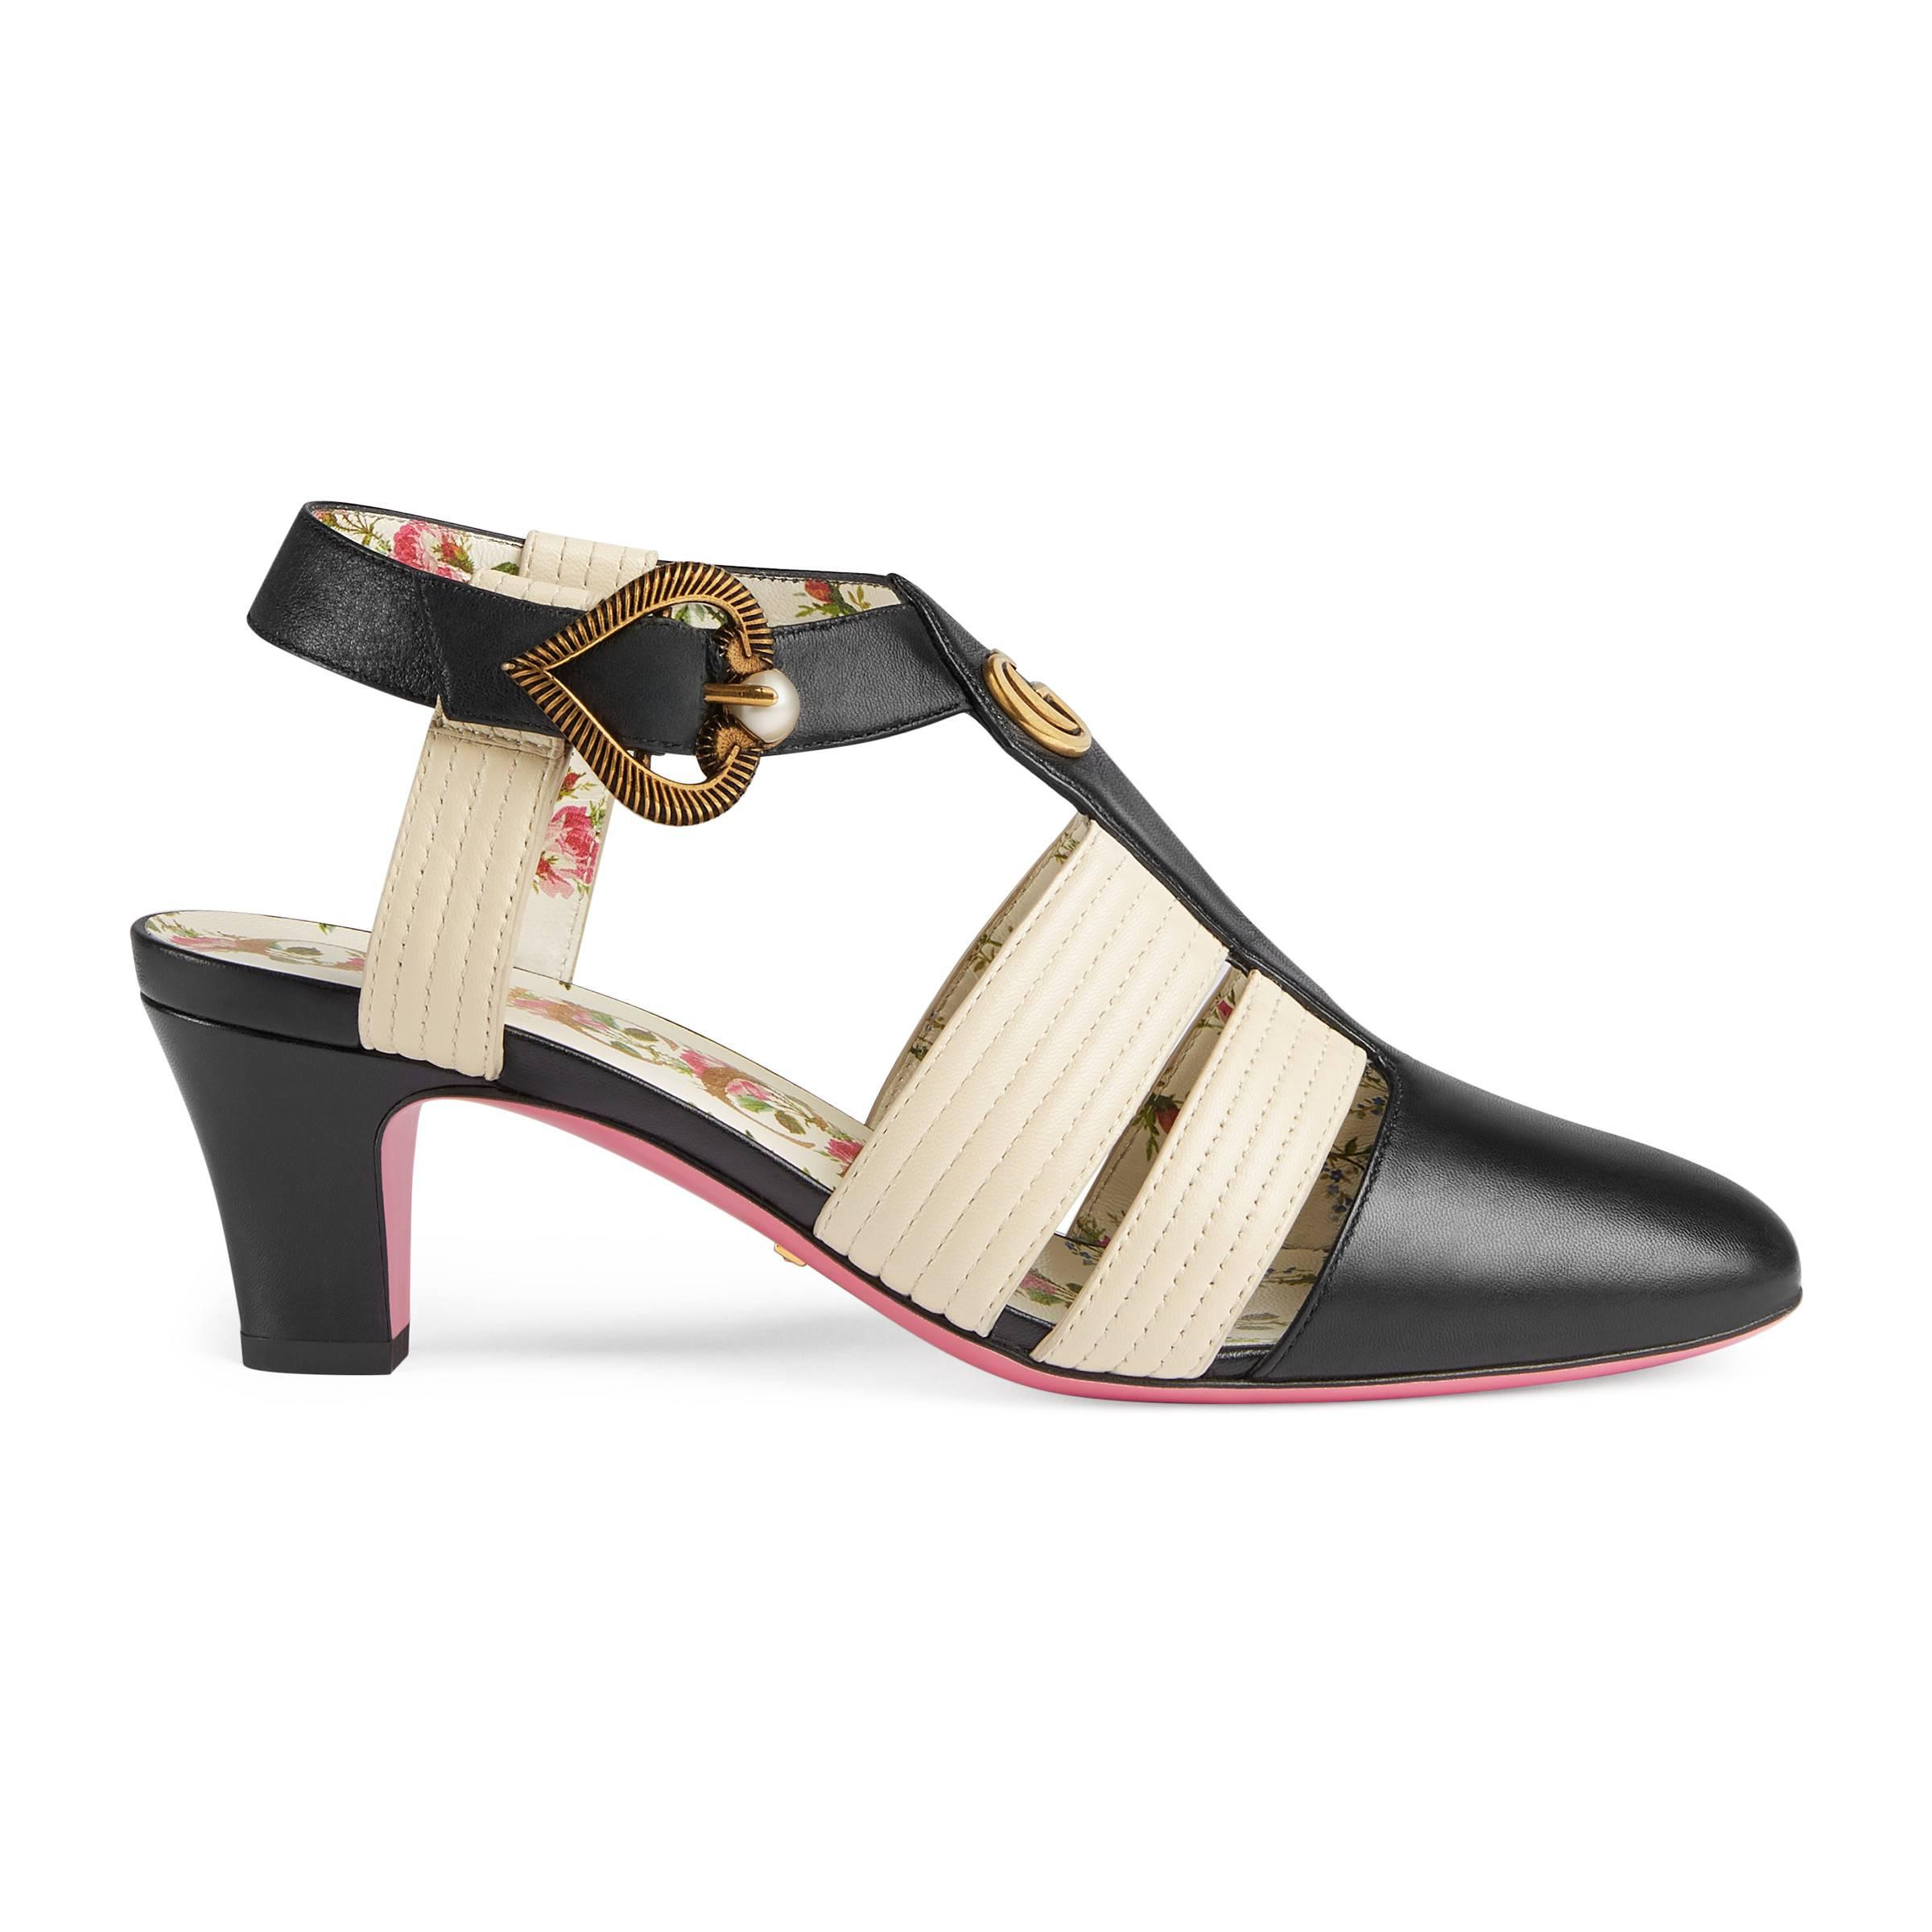 ae2d6617c Gucci Leather Mid-heel T-strap Sandal in Black - Lyst